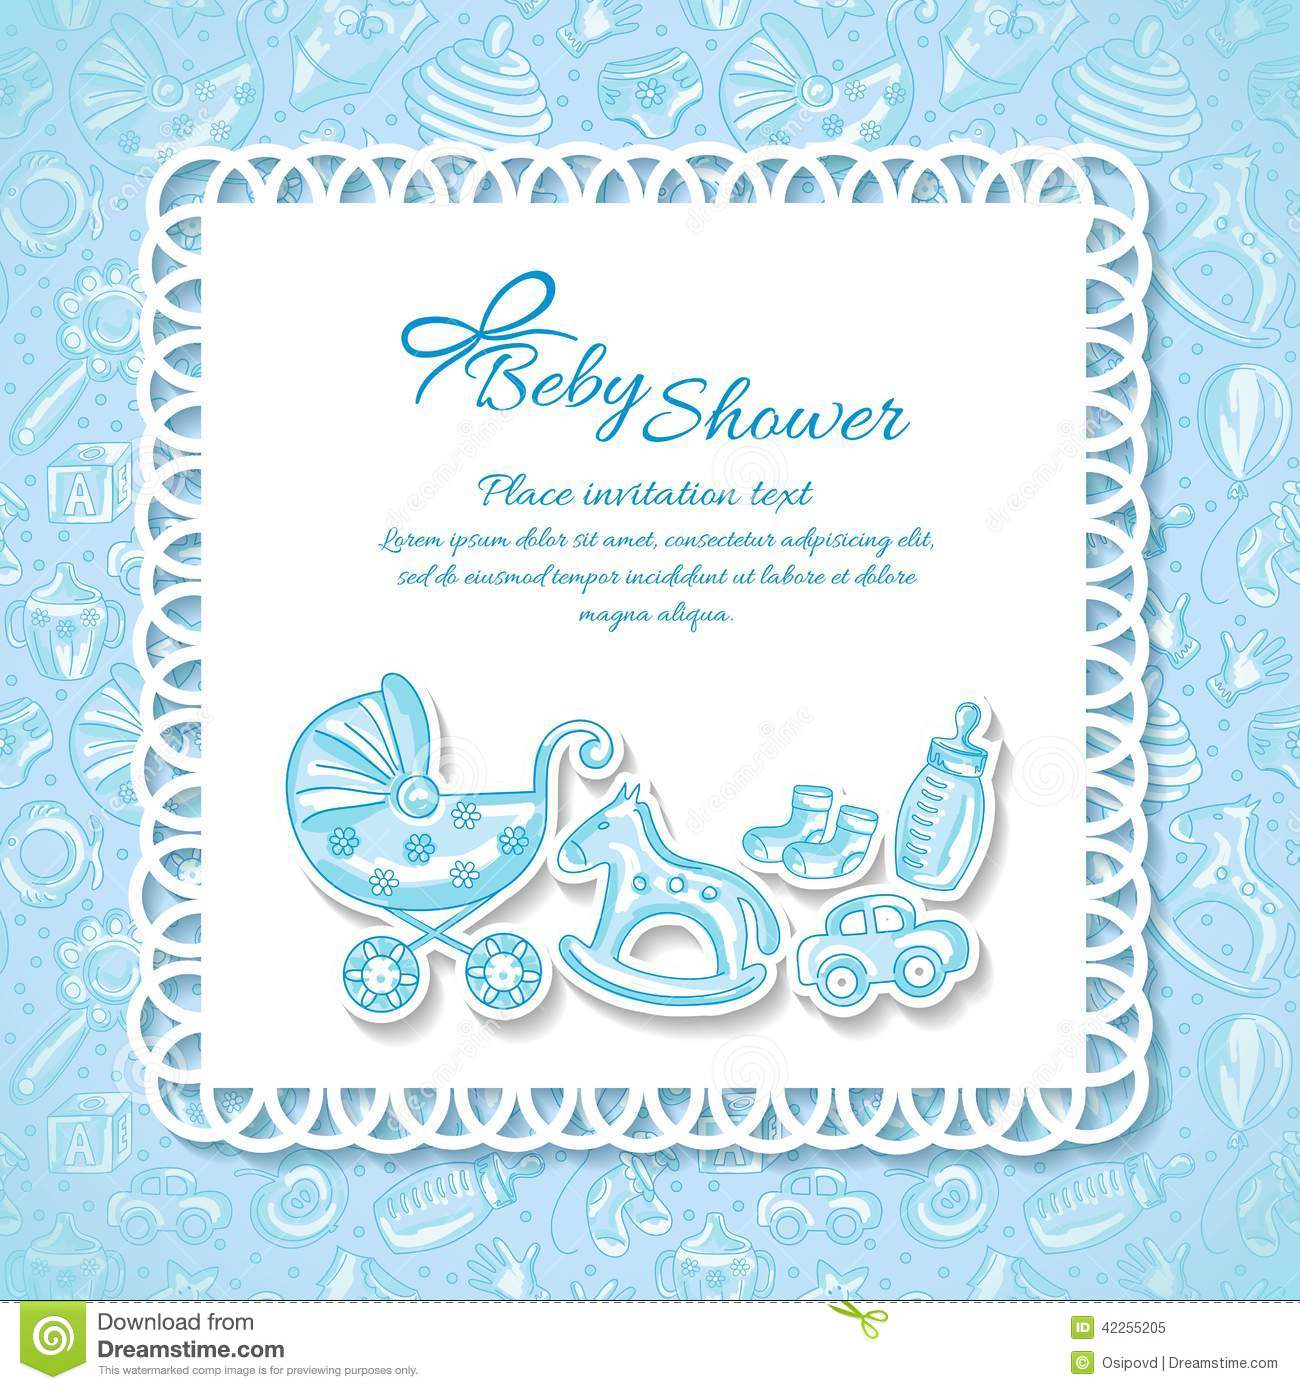 A Star Is Born Baby Shower Invitations for best invitations template